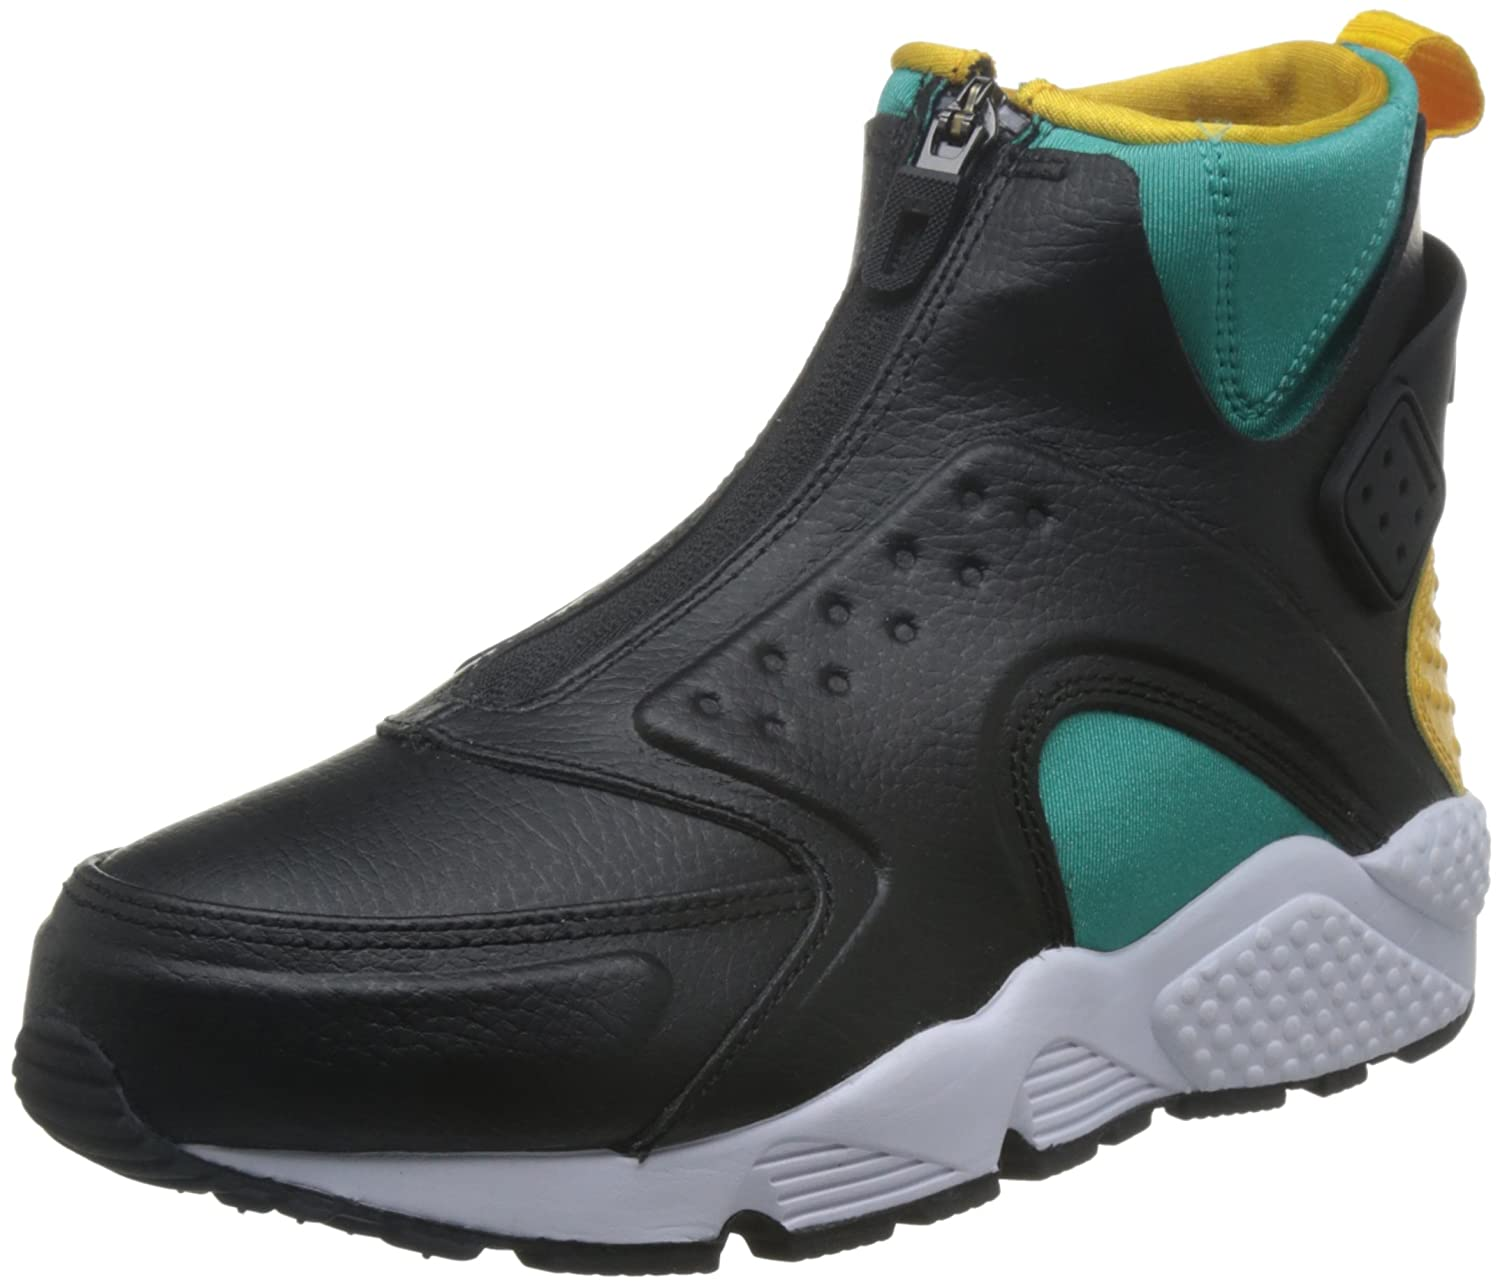 reputable site 924d0 ef1c5 Amazon.com | NIKE Women's Air Huarache Run Mid Running Shoe ...